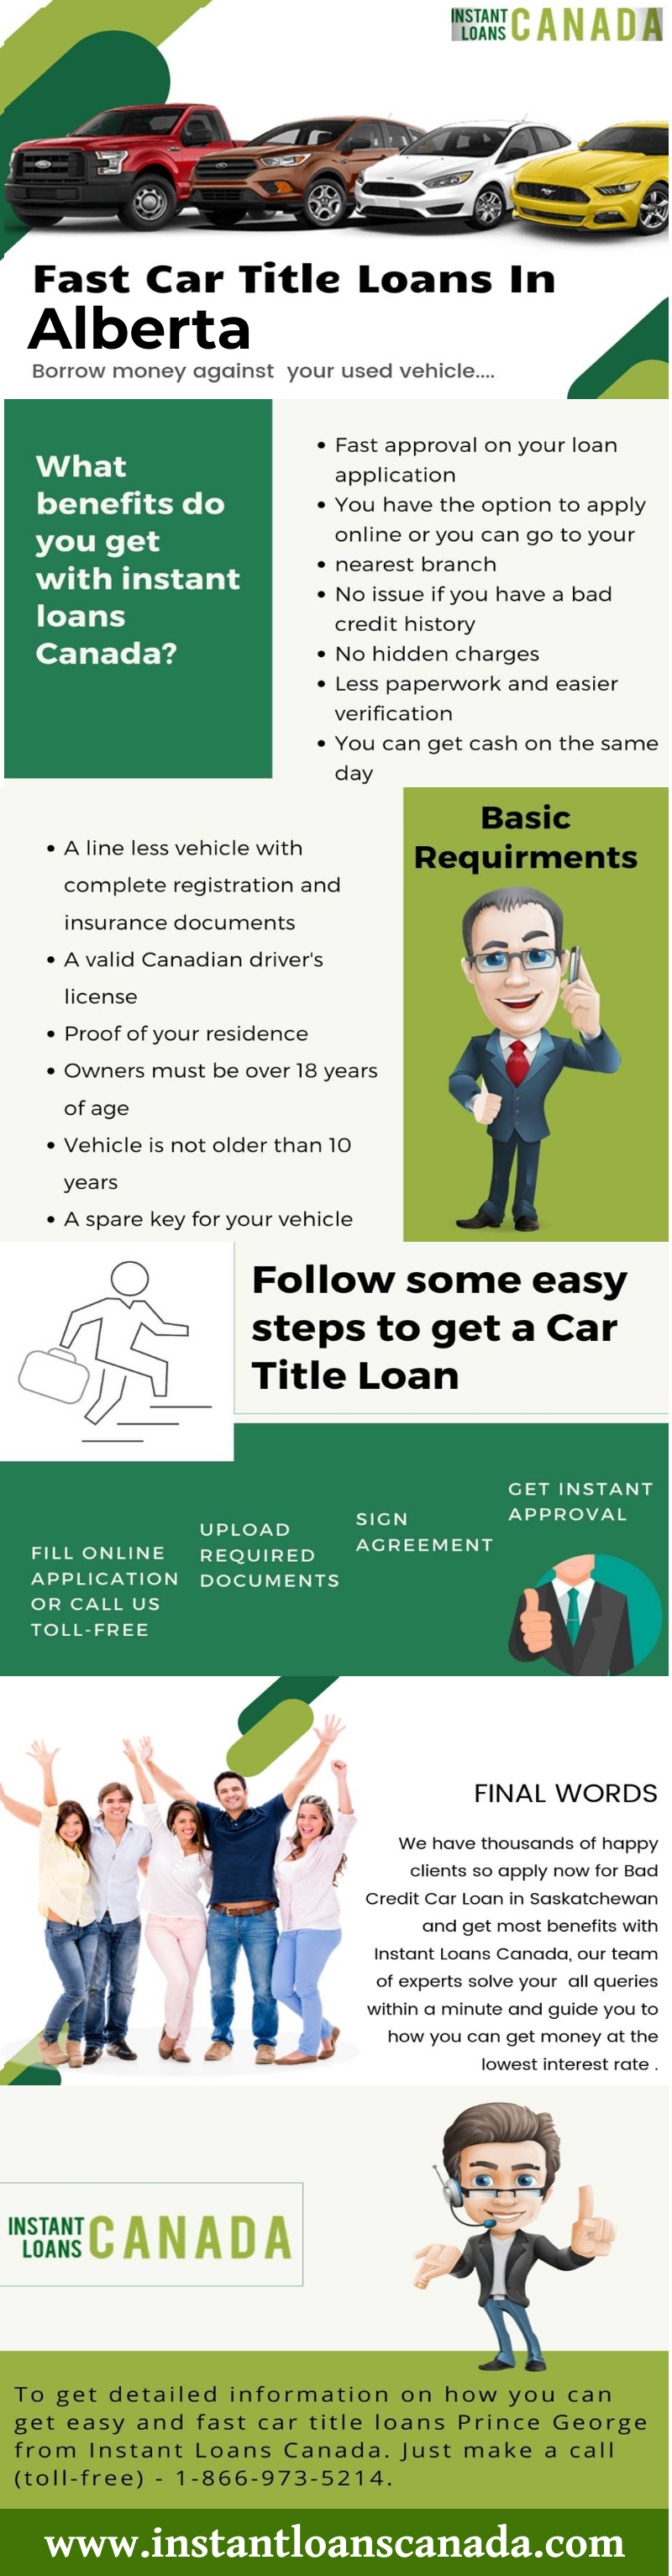 Fast Same Day Approval Car Title Loan In Alberta In 2020 Car Title Loan Loans For Bad Credit